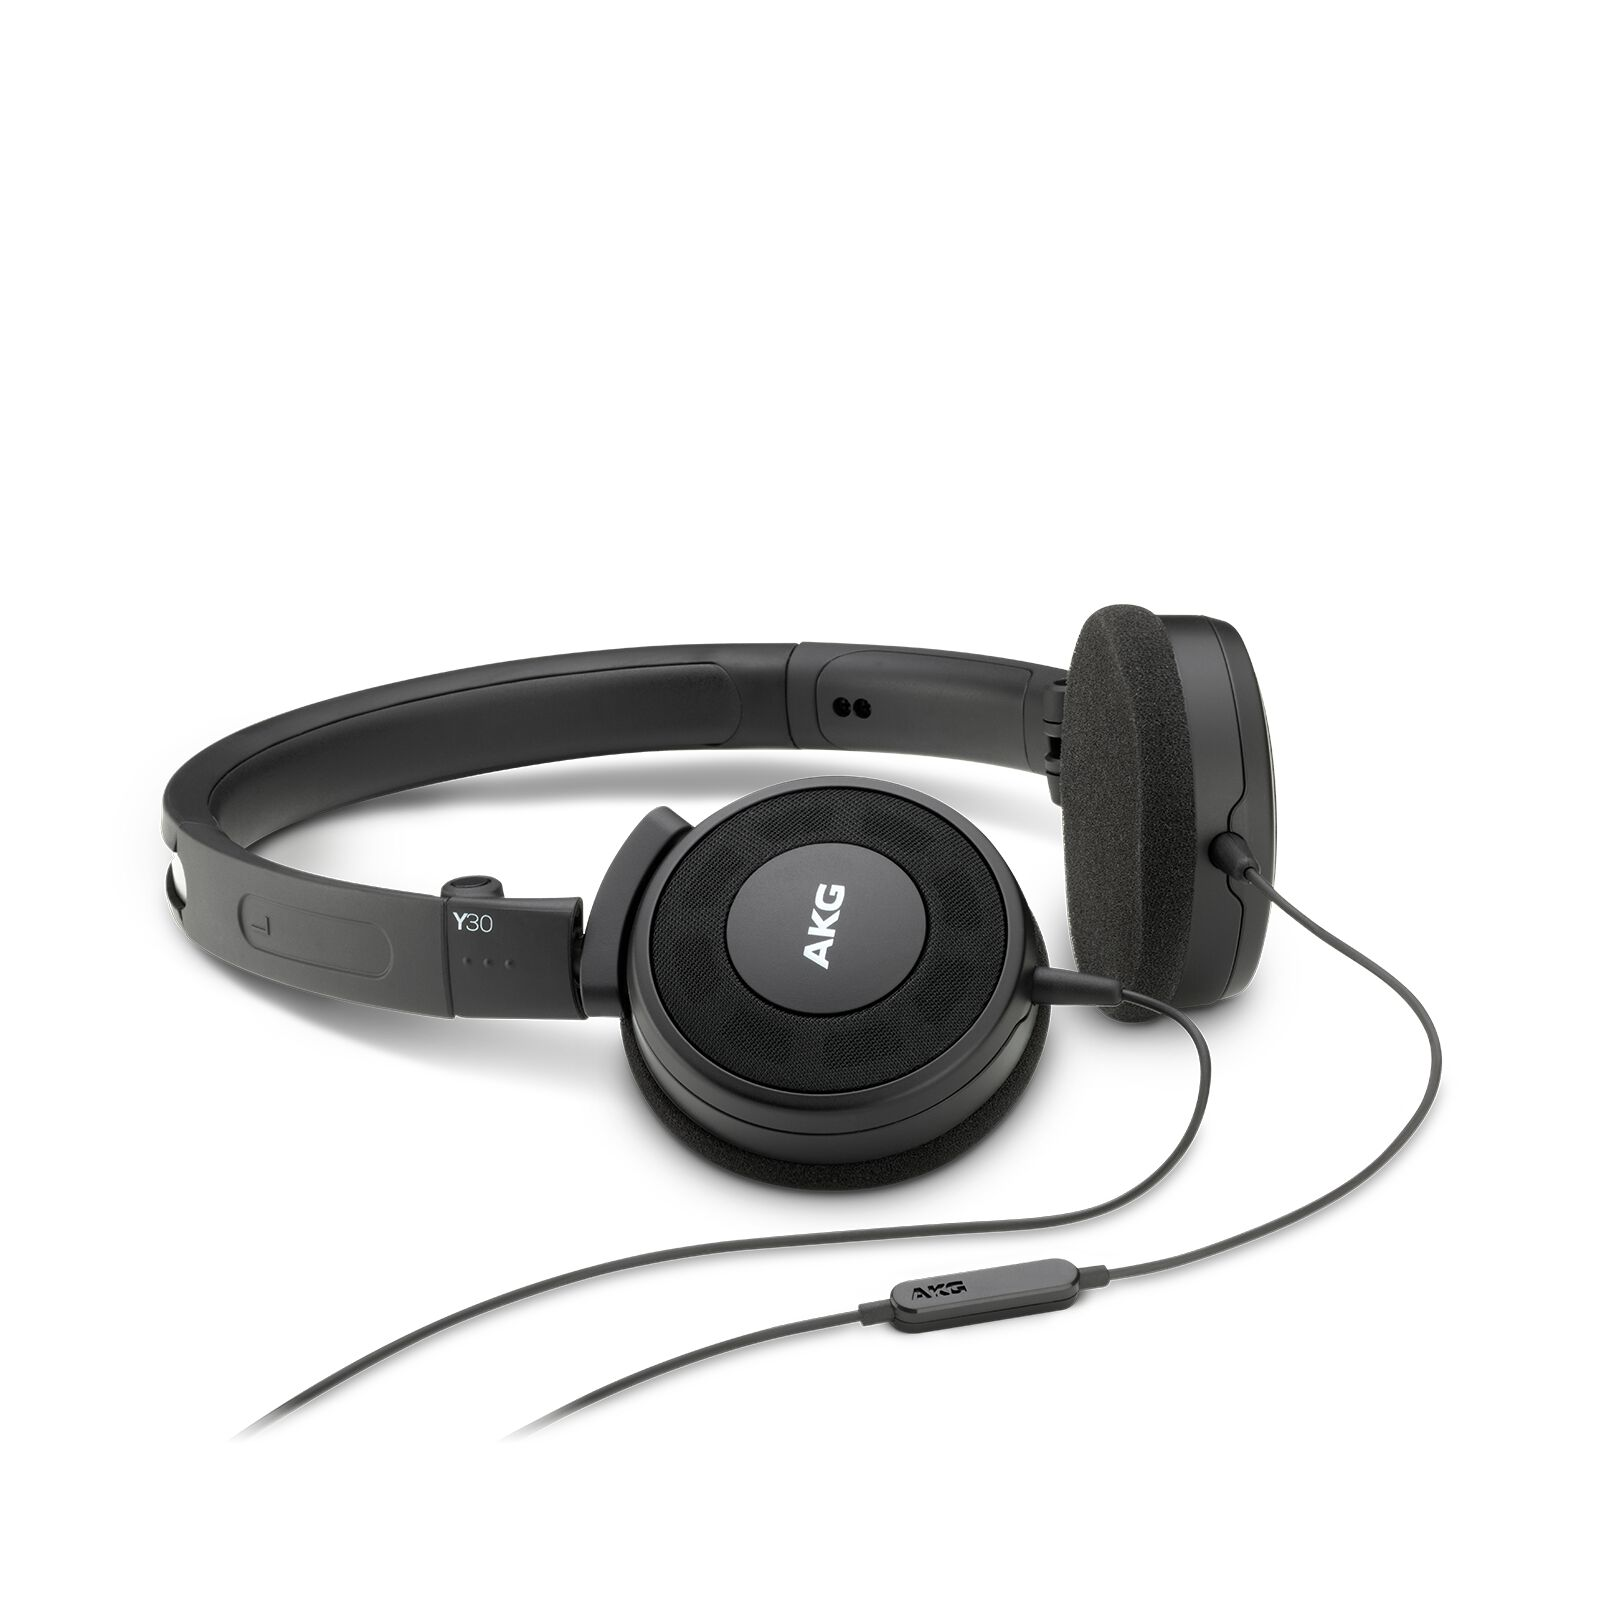 Image of AKG Y 30 Black